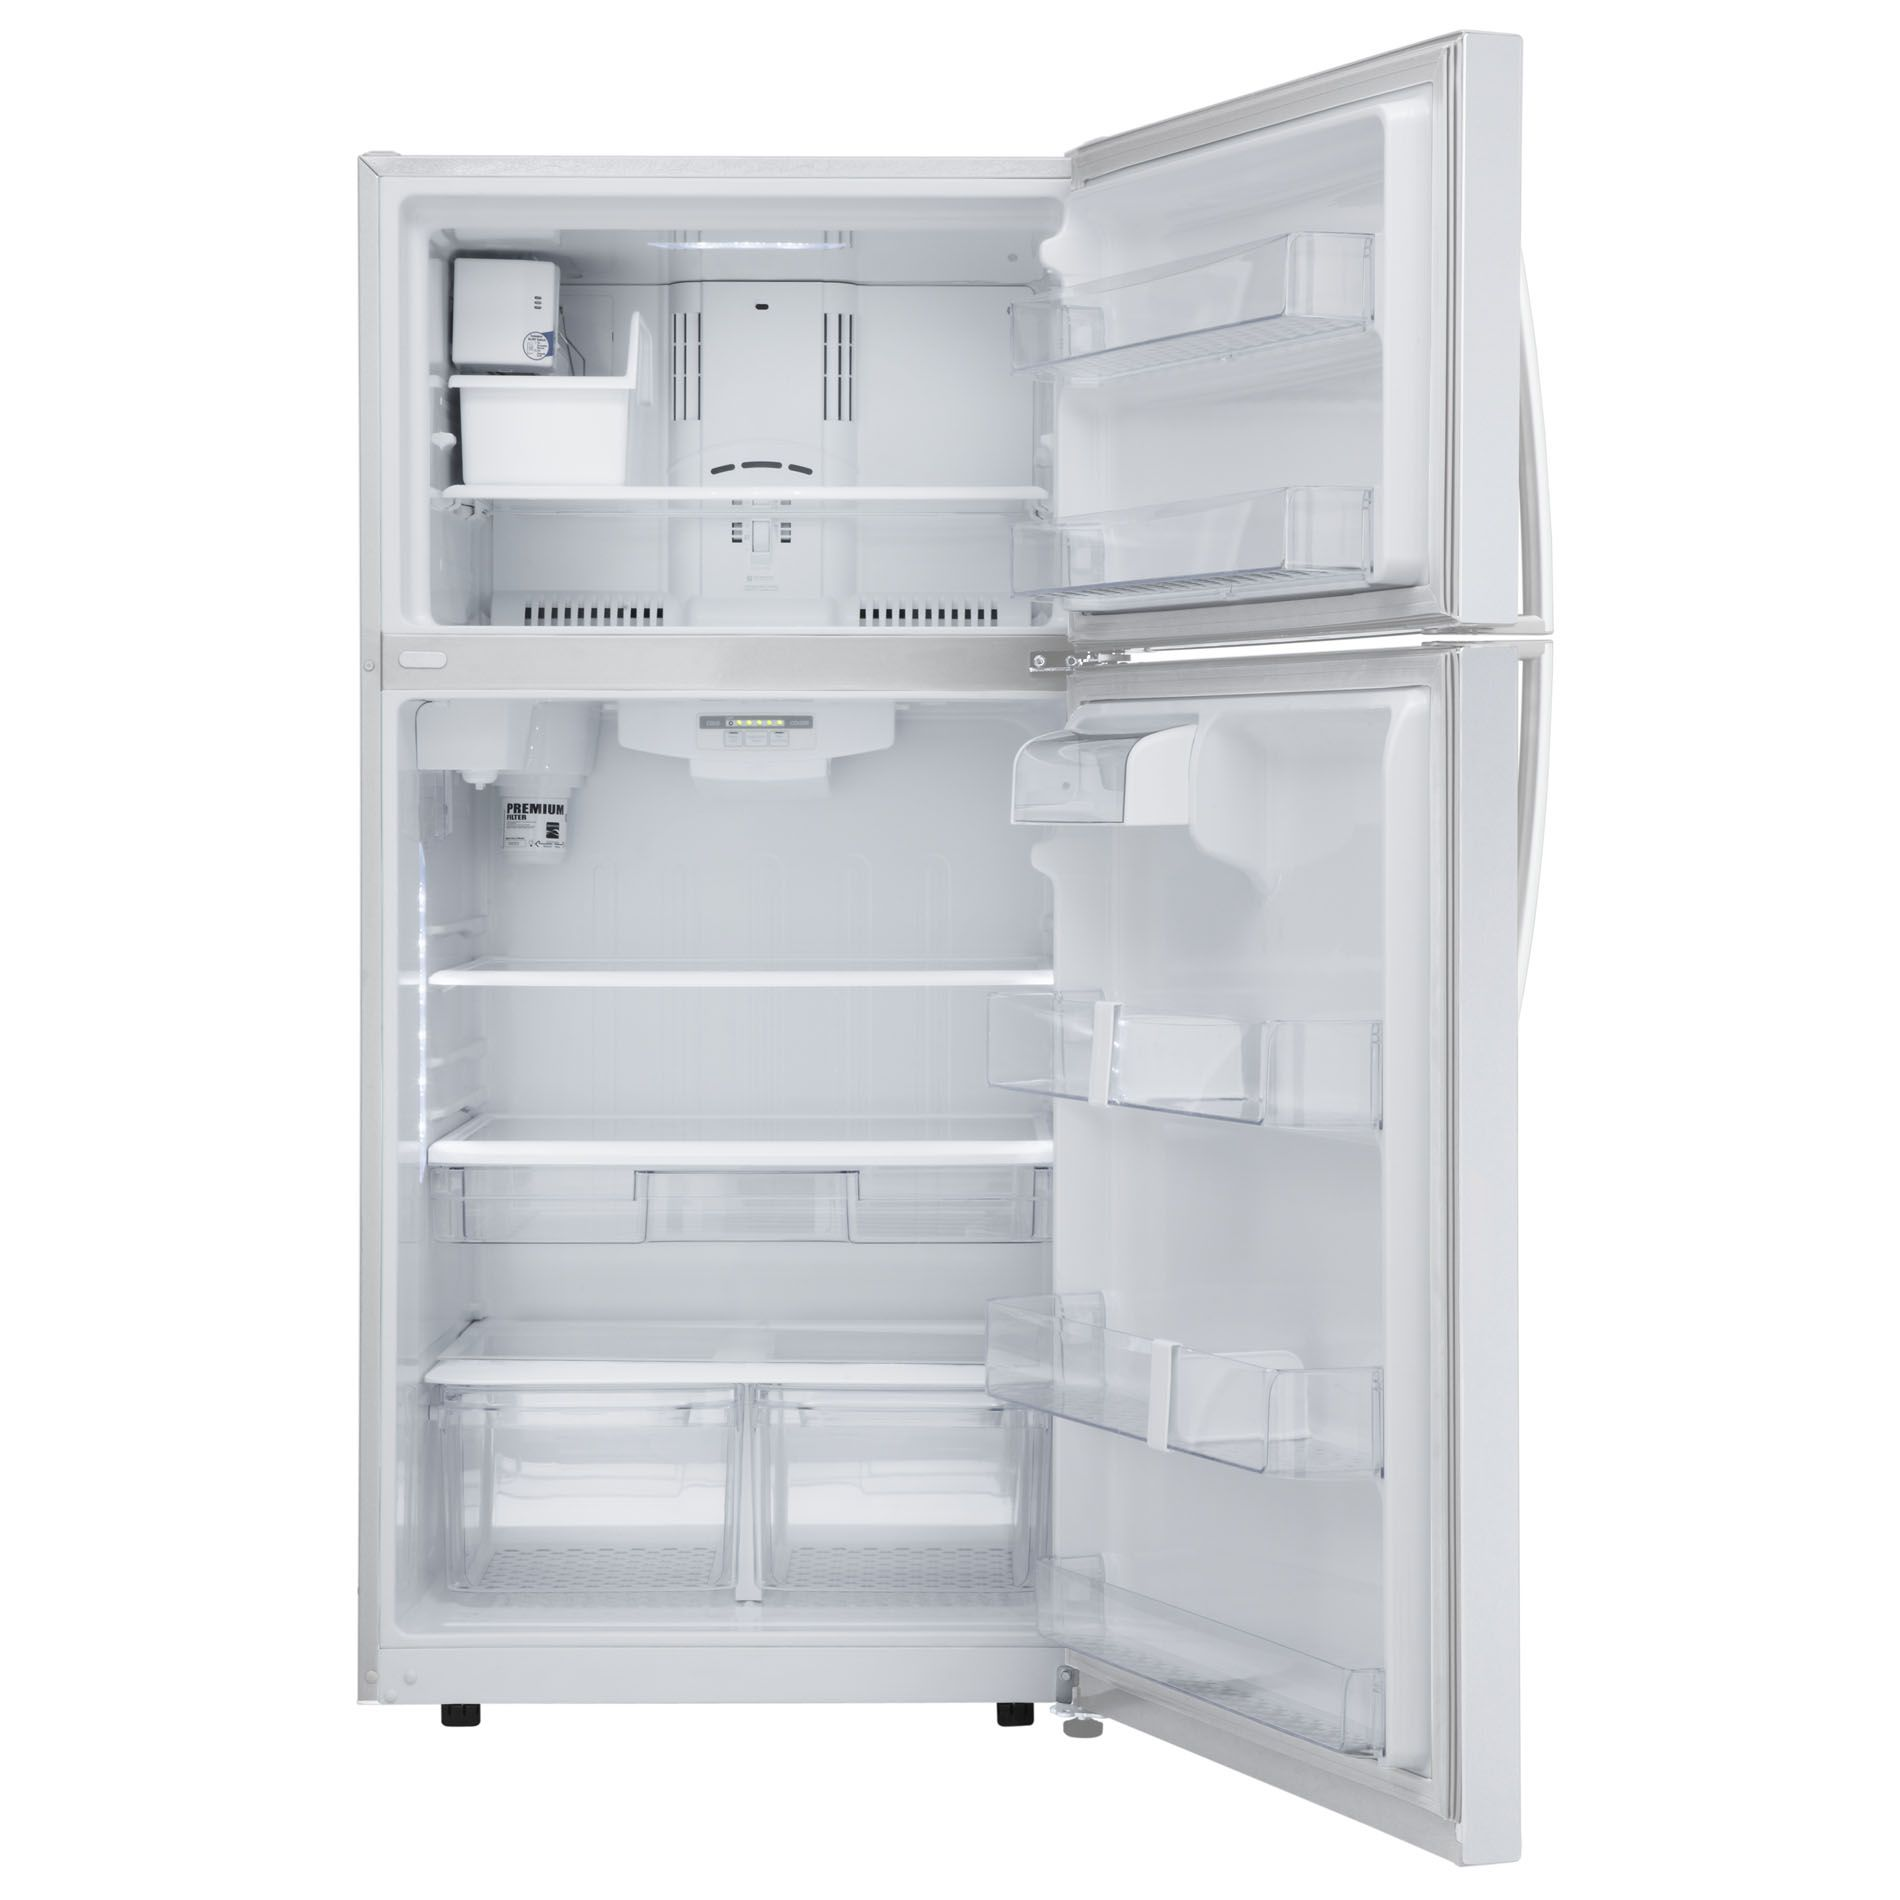 Kenmore 24 cu. ft. Top-Freezer Refrigerator w/ Internal Water Dispenser - White